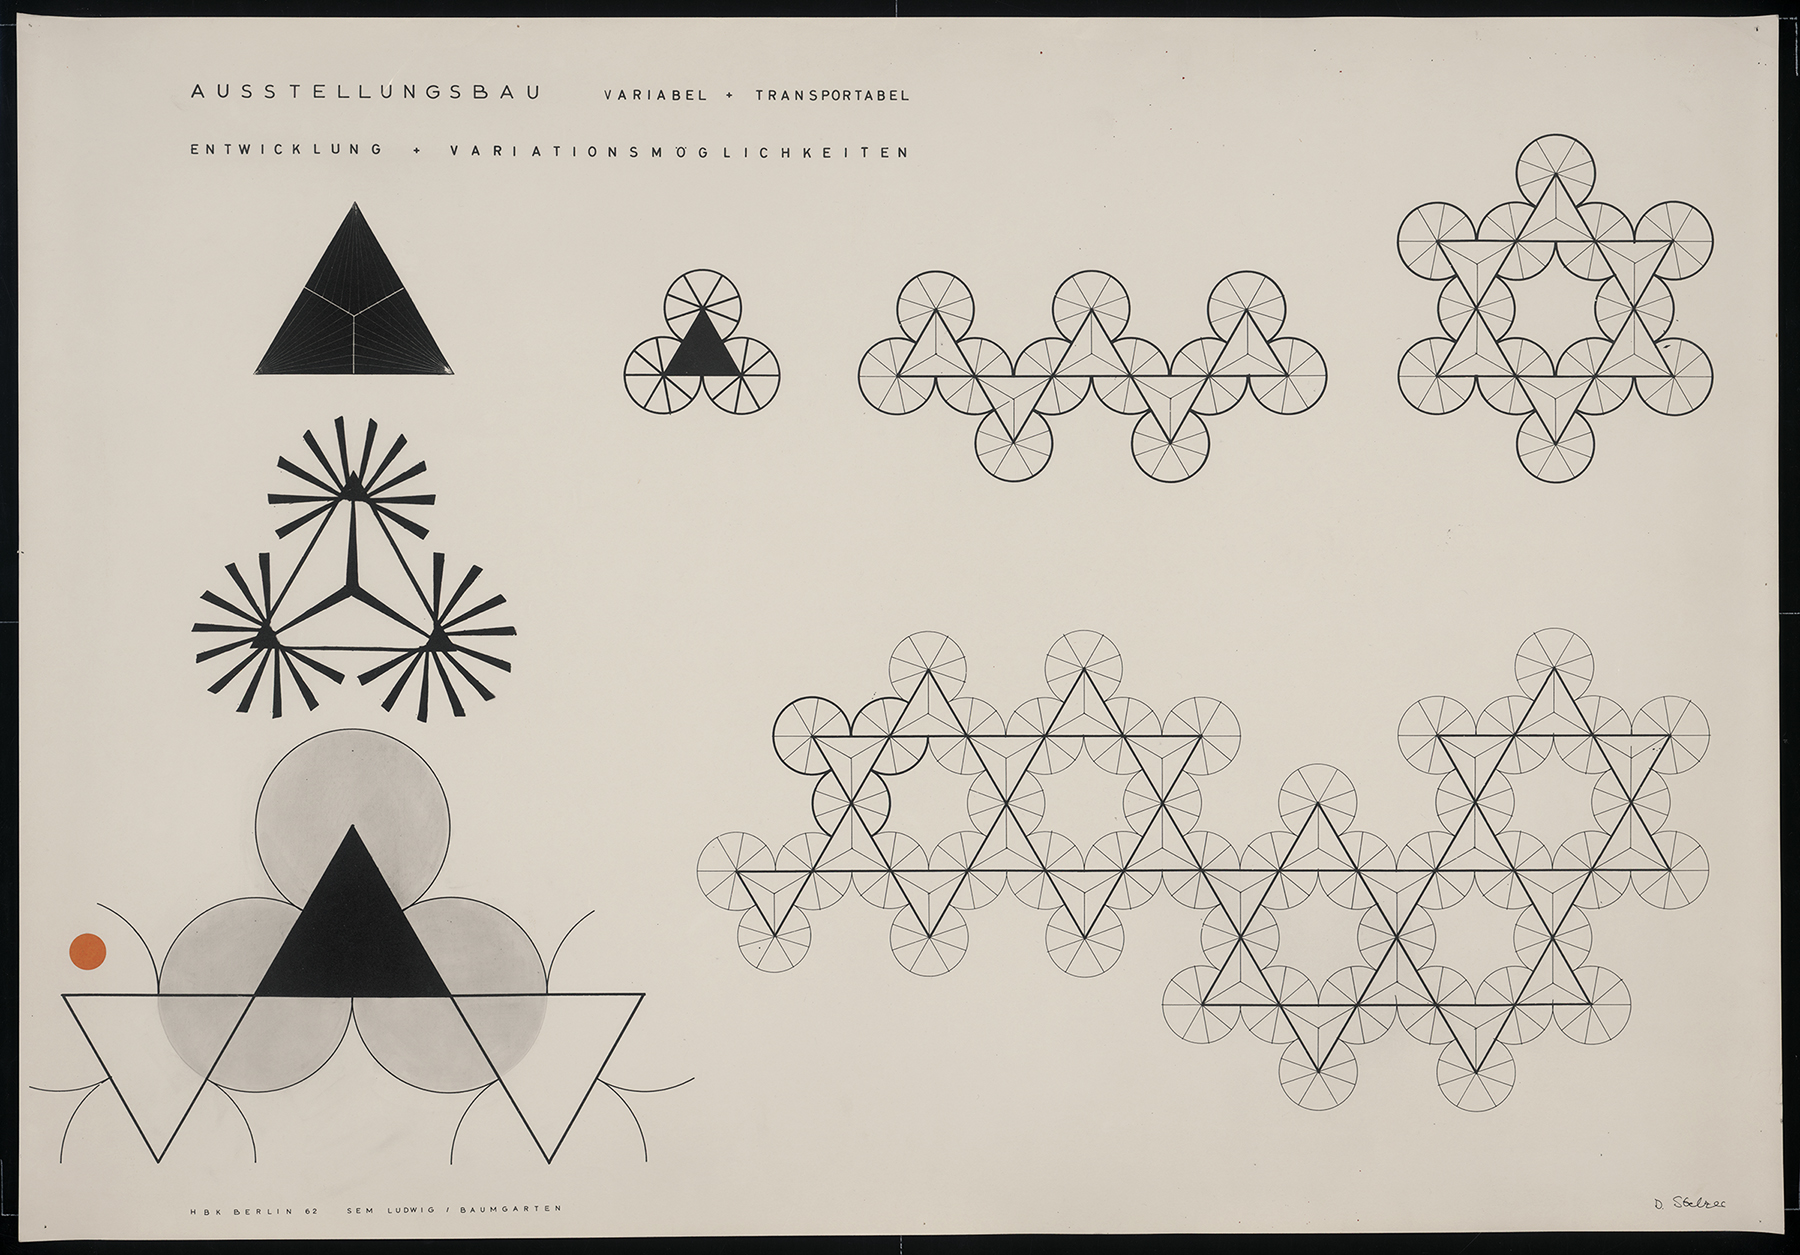 Drawing showing interlocking shapes.